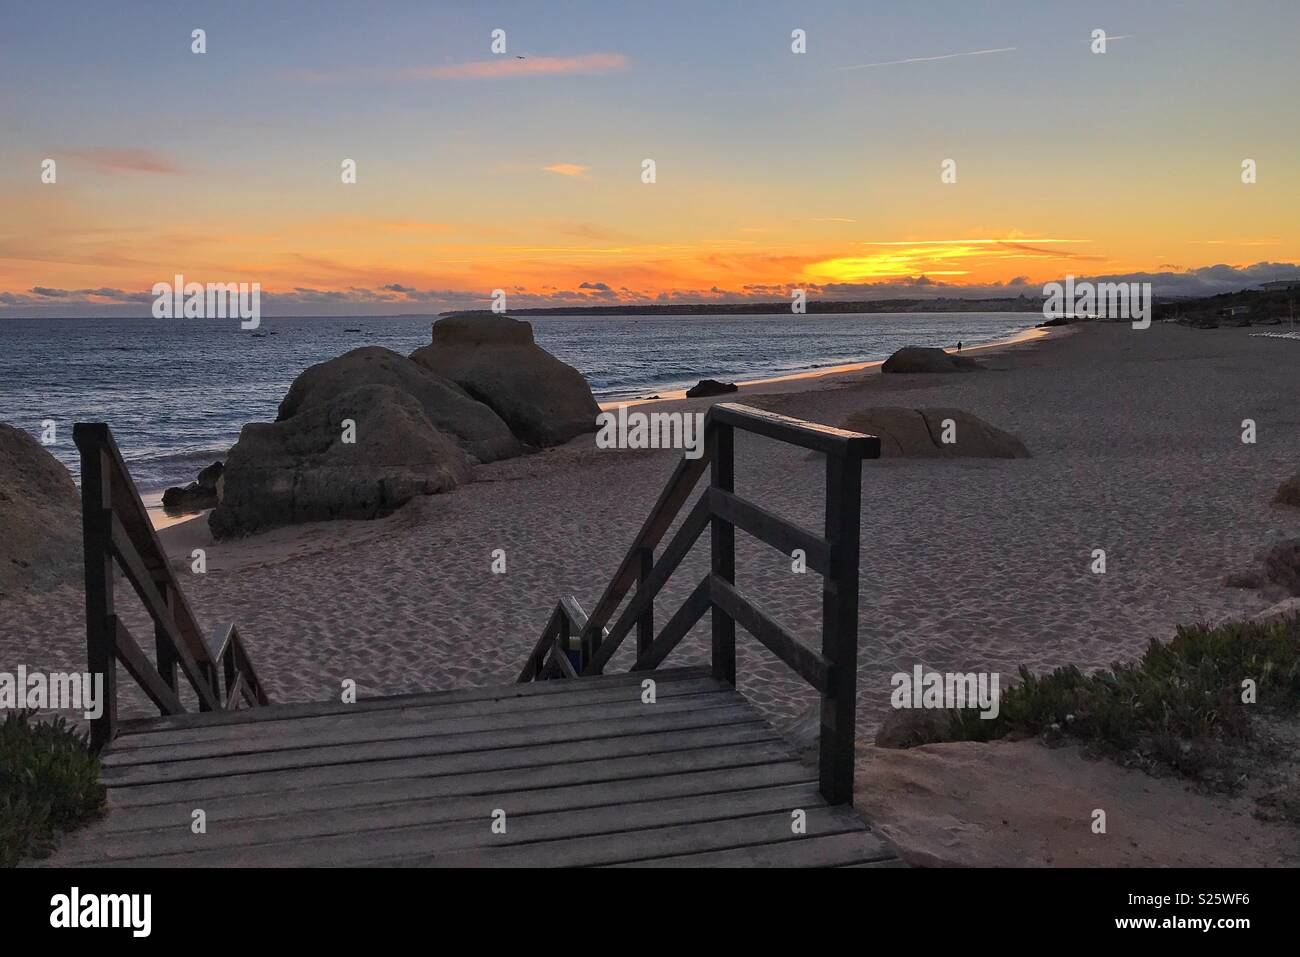 Stairs leading down a picturesque beach at sunset - Stock Image